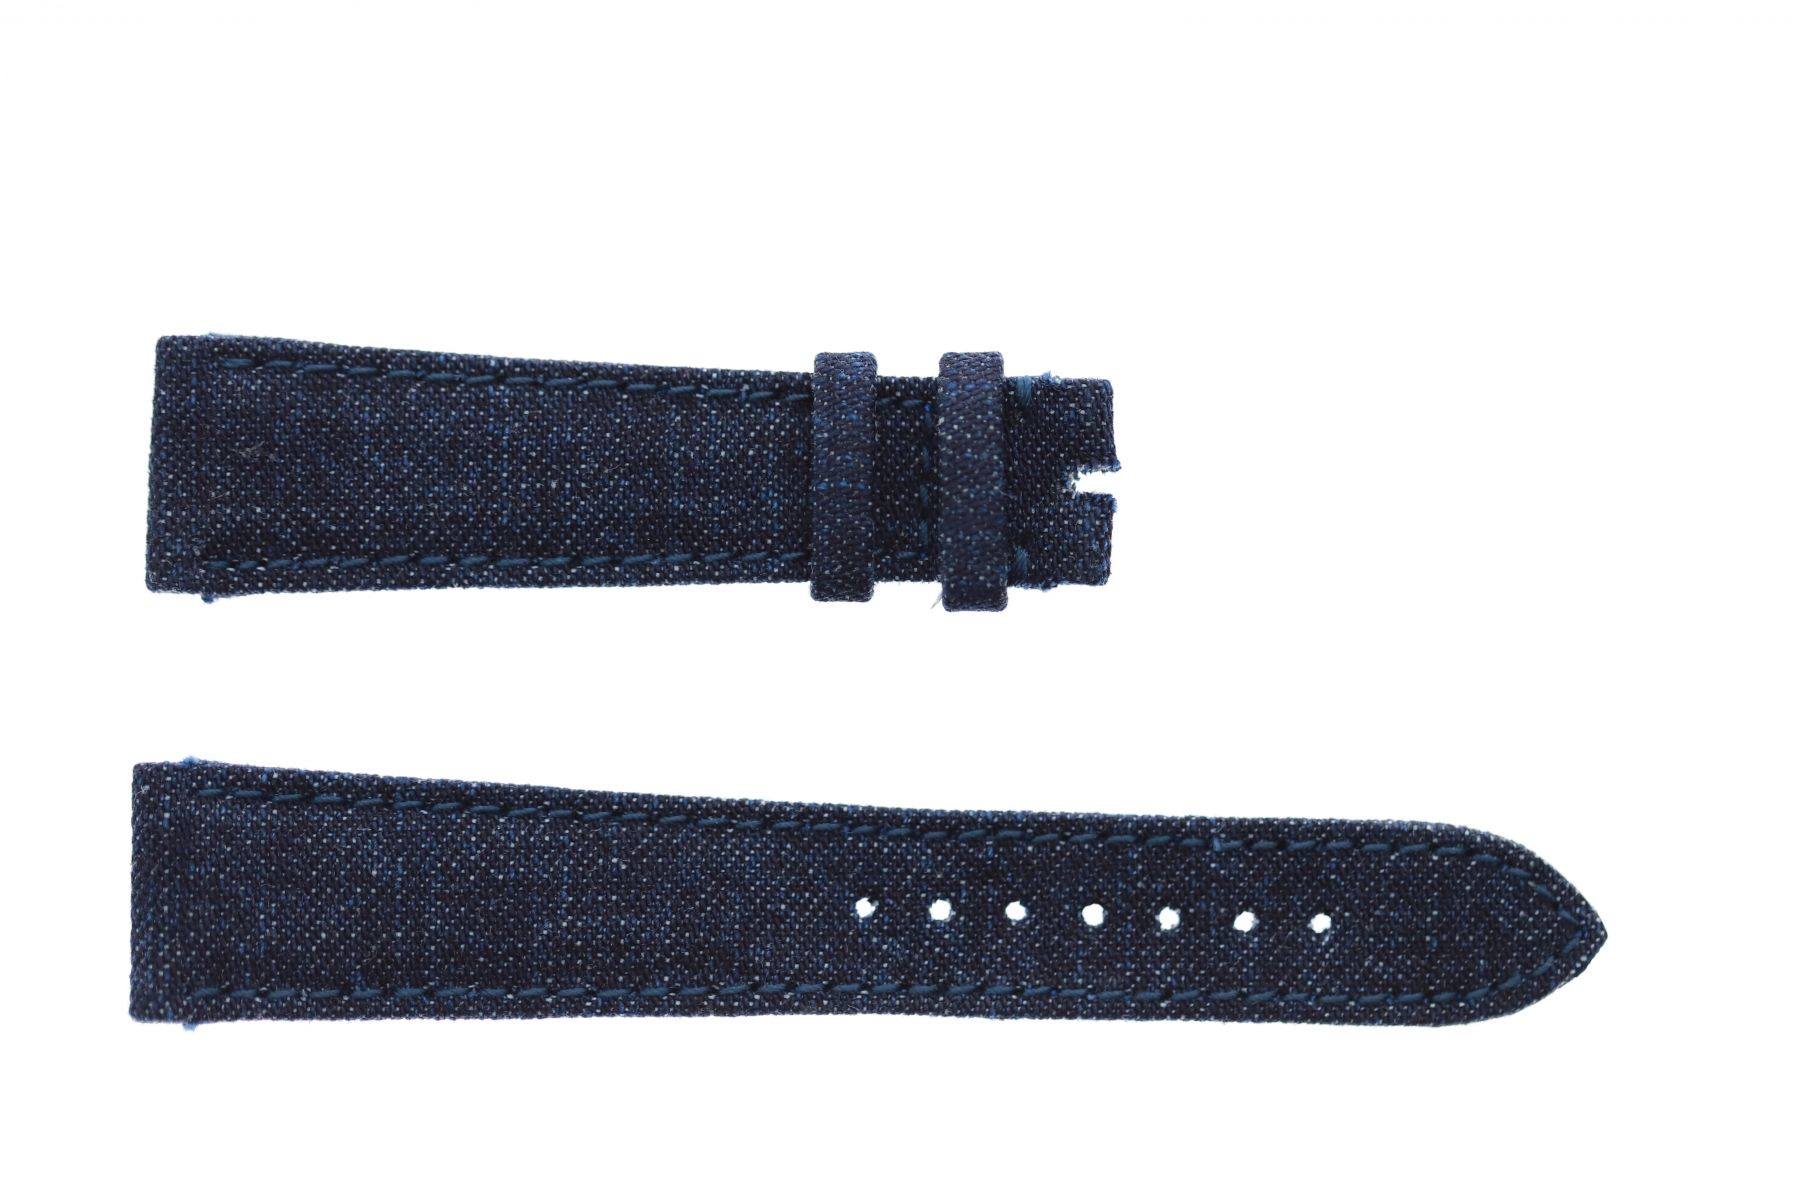 Dark Blue Japanese Denim strap 20mm Rolex Daydate, Dayjust style. On-tone stitching